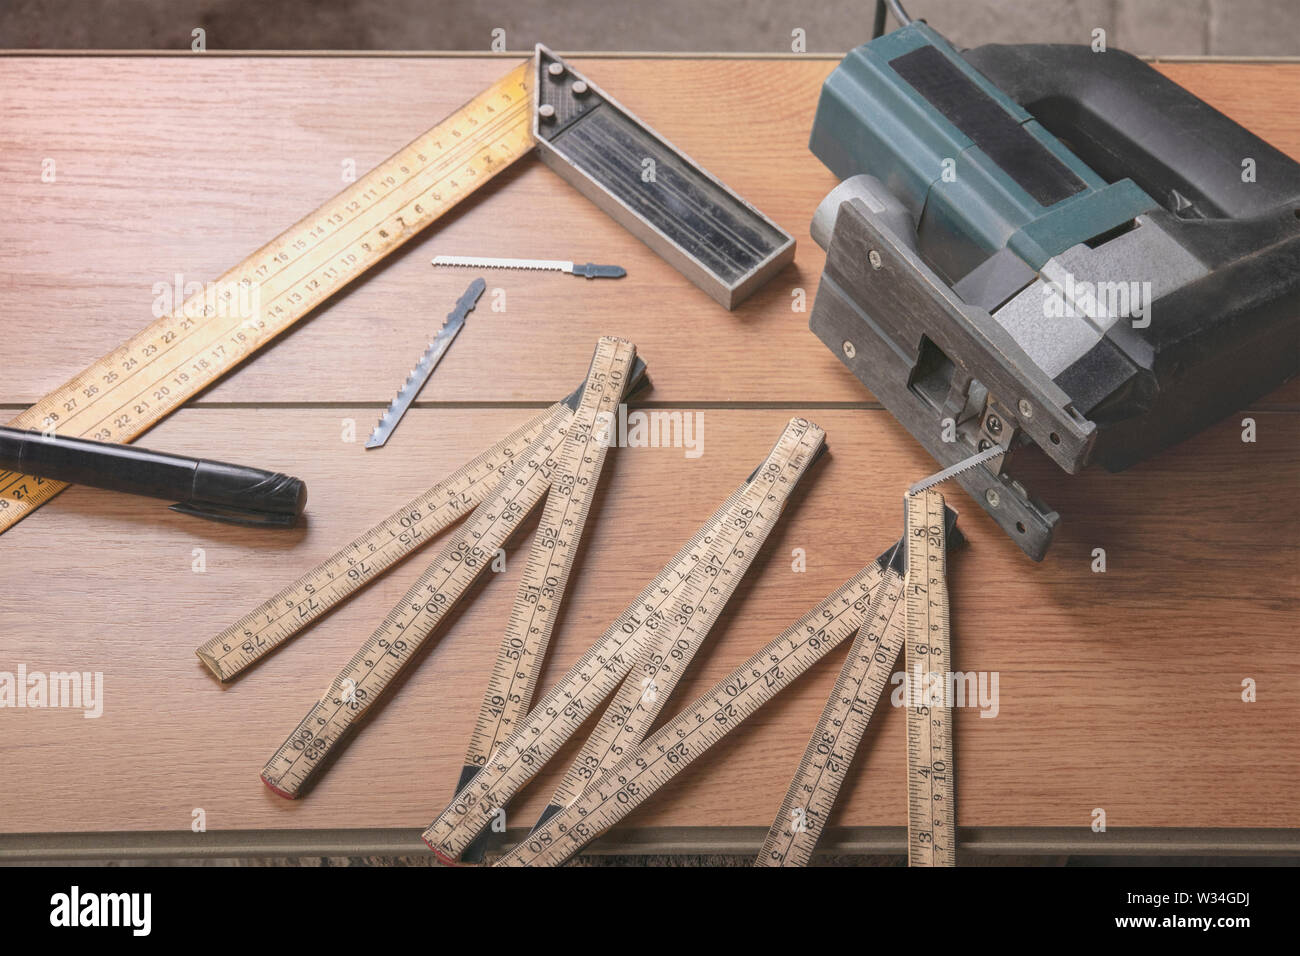 Electric jigsaw, folding ruler, square, marker for marking, replaceable files for electric saws lie on a wooden laminate. Tools carpenter and electric - Stock Image